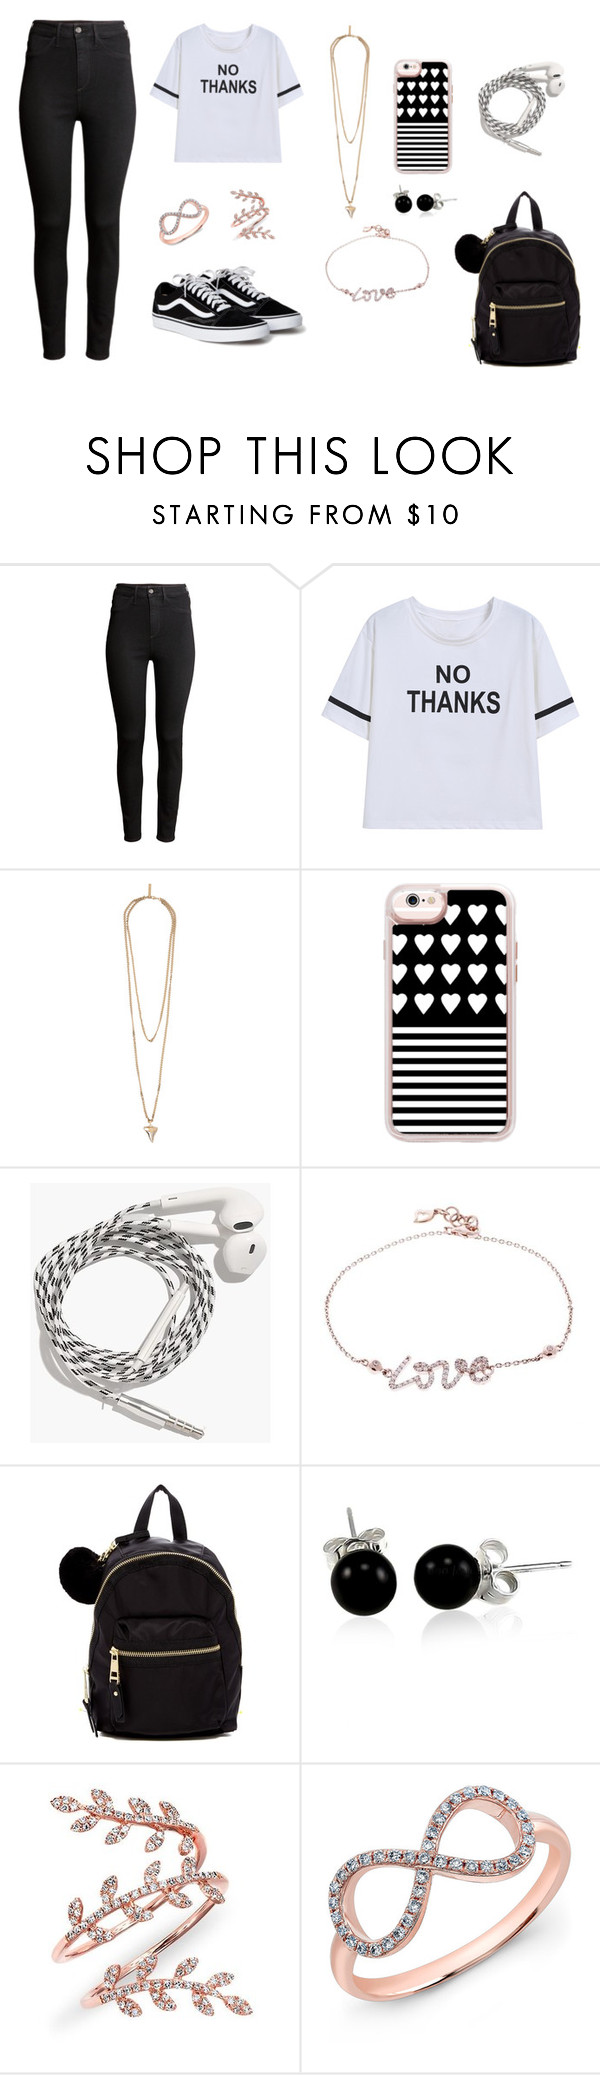 """Thanks"" by layaneleitth on Polyvore featuring moda, H&M, Givenchy, Casetify, Madewell, Madden Girl, Bling Jewelry e Anne Sisteron"